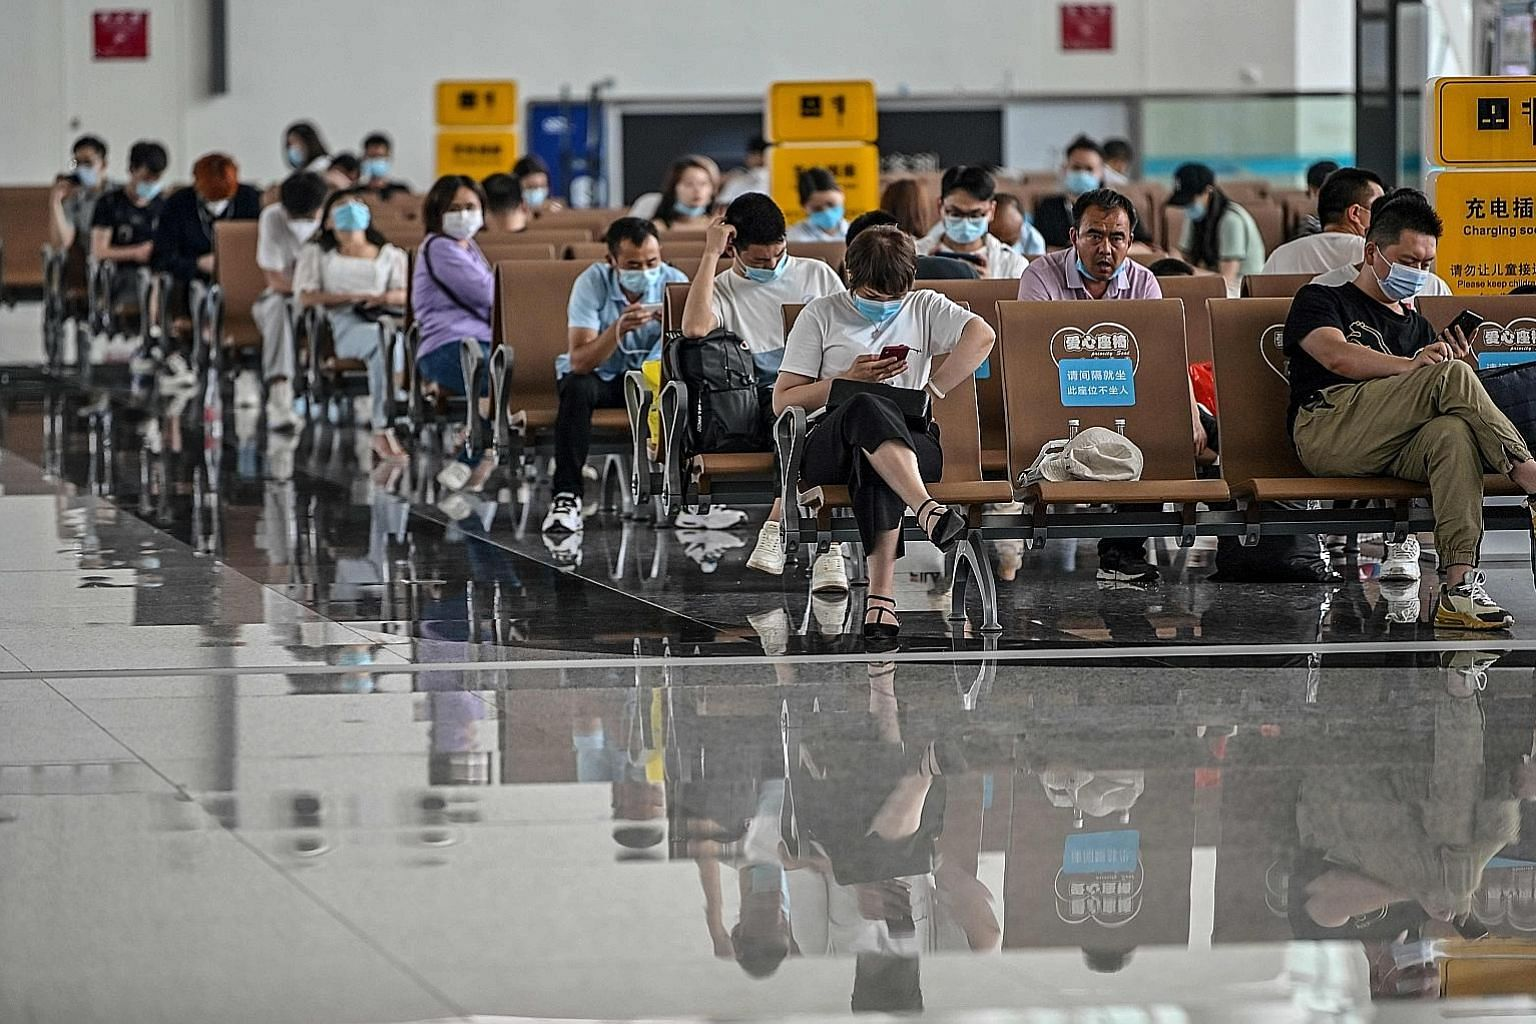 Passengers waiting at Wuhan's Tianhe Airport last week. Chinese citizens can return home, but borders are still closed to foreigners.